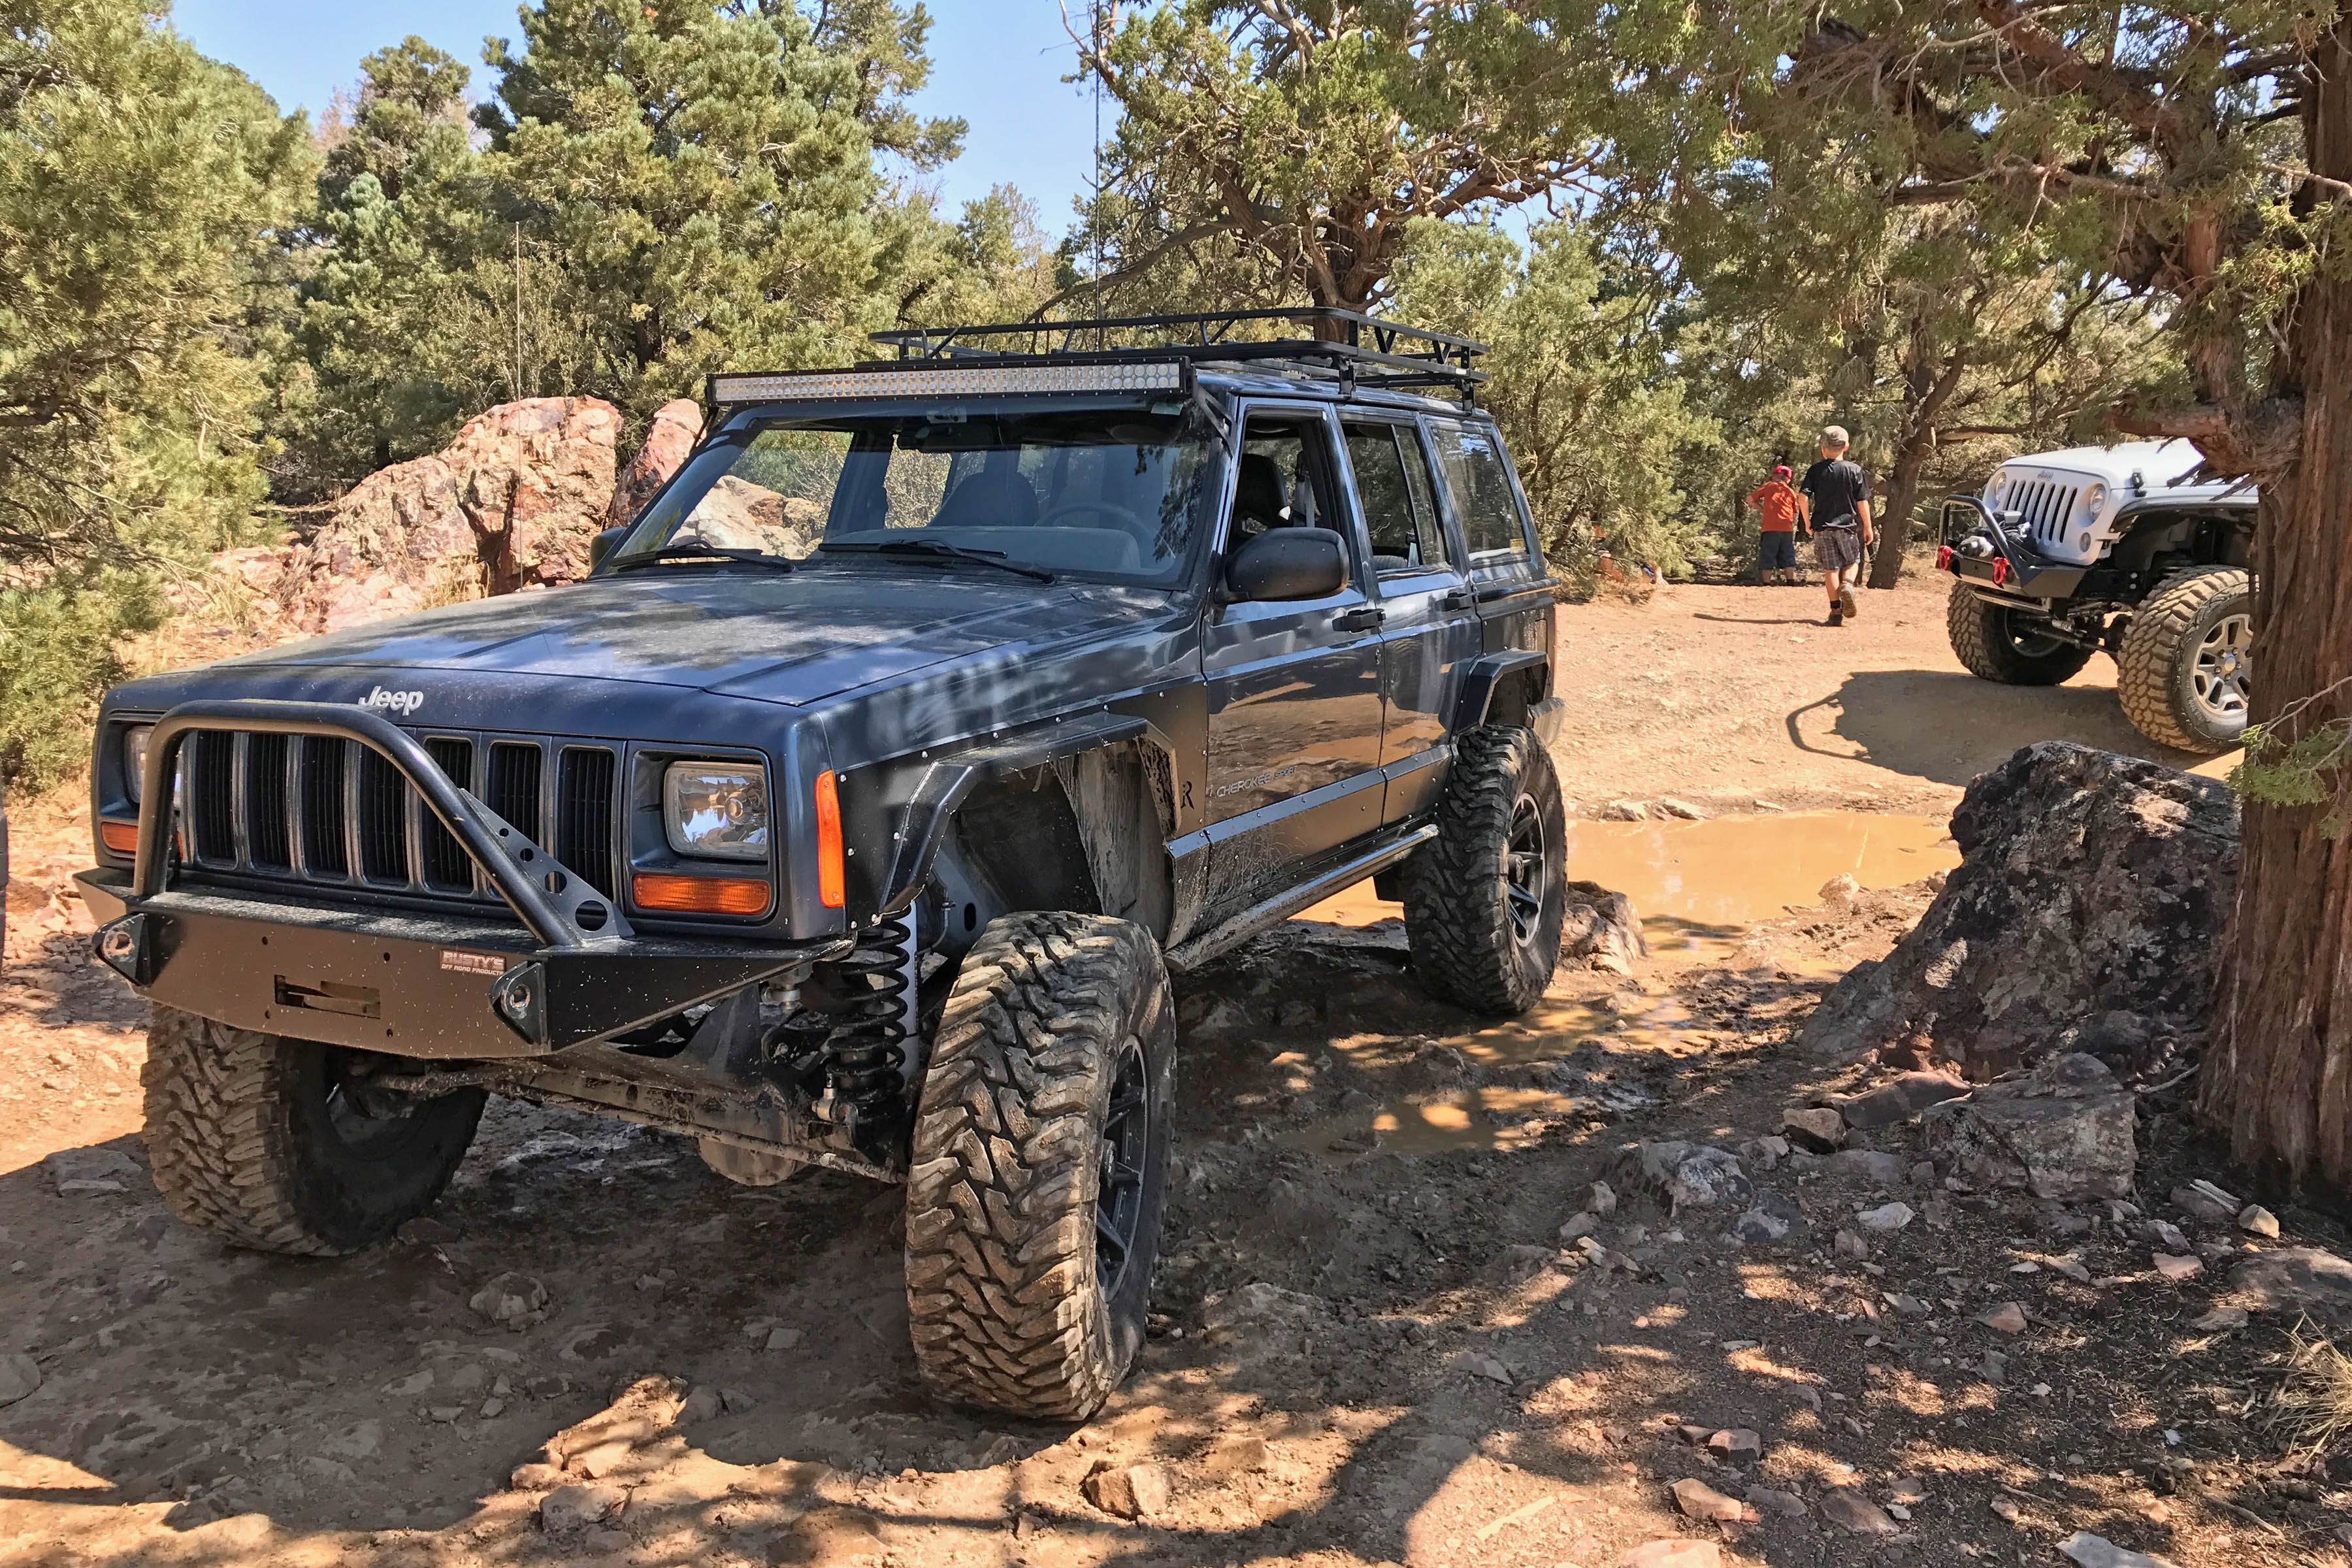 Putting Steel Between The Rocks and Project XtremeJ